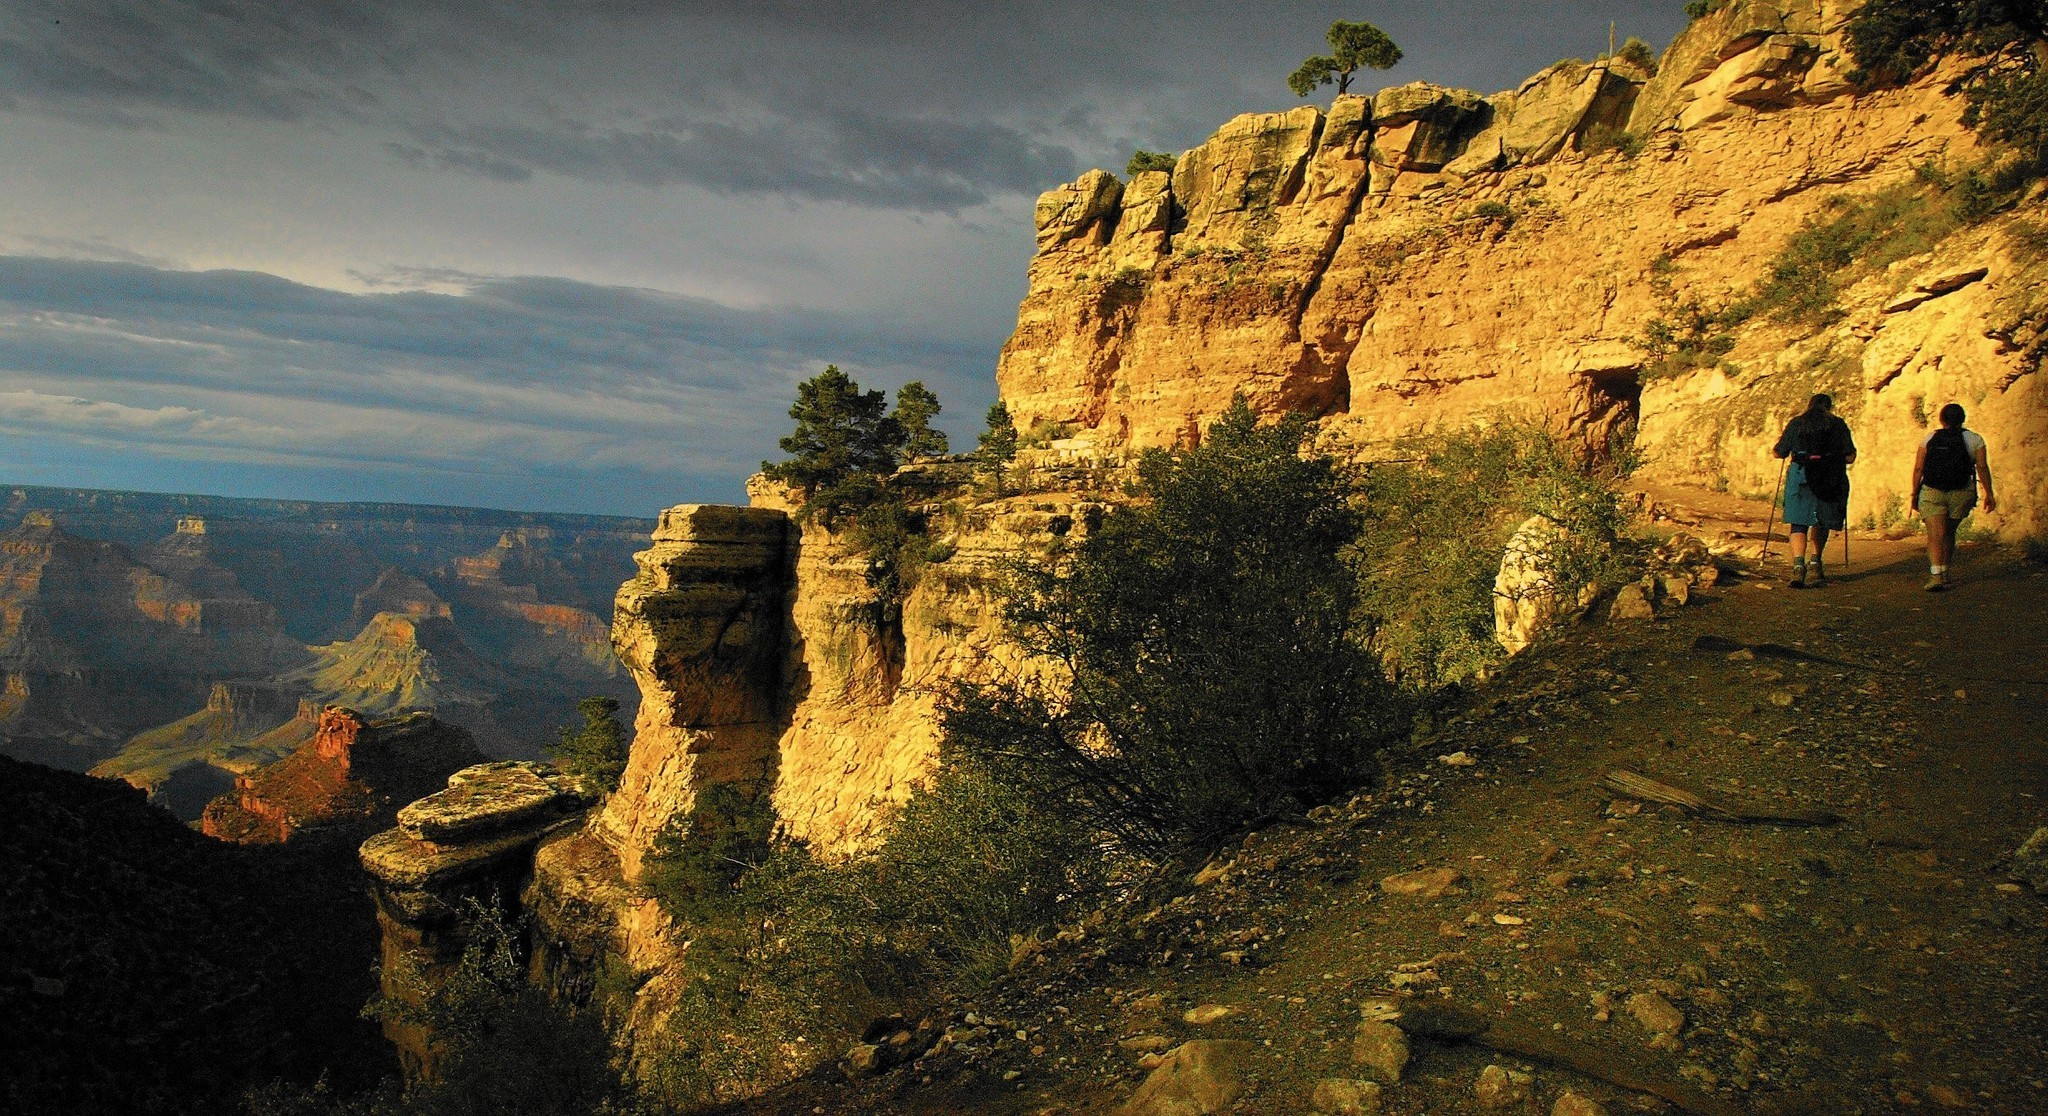 He hiked the Grand Canyon in a day, on the lookout for blisters and ooh-aah views